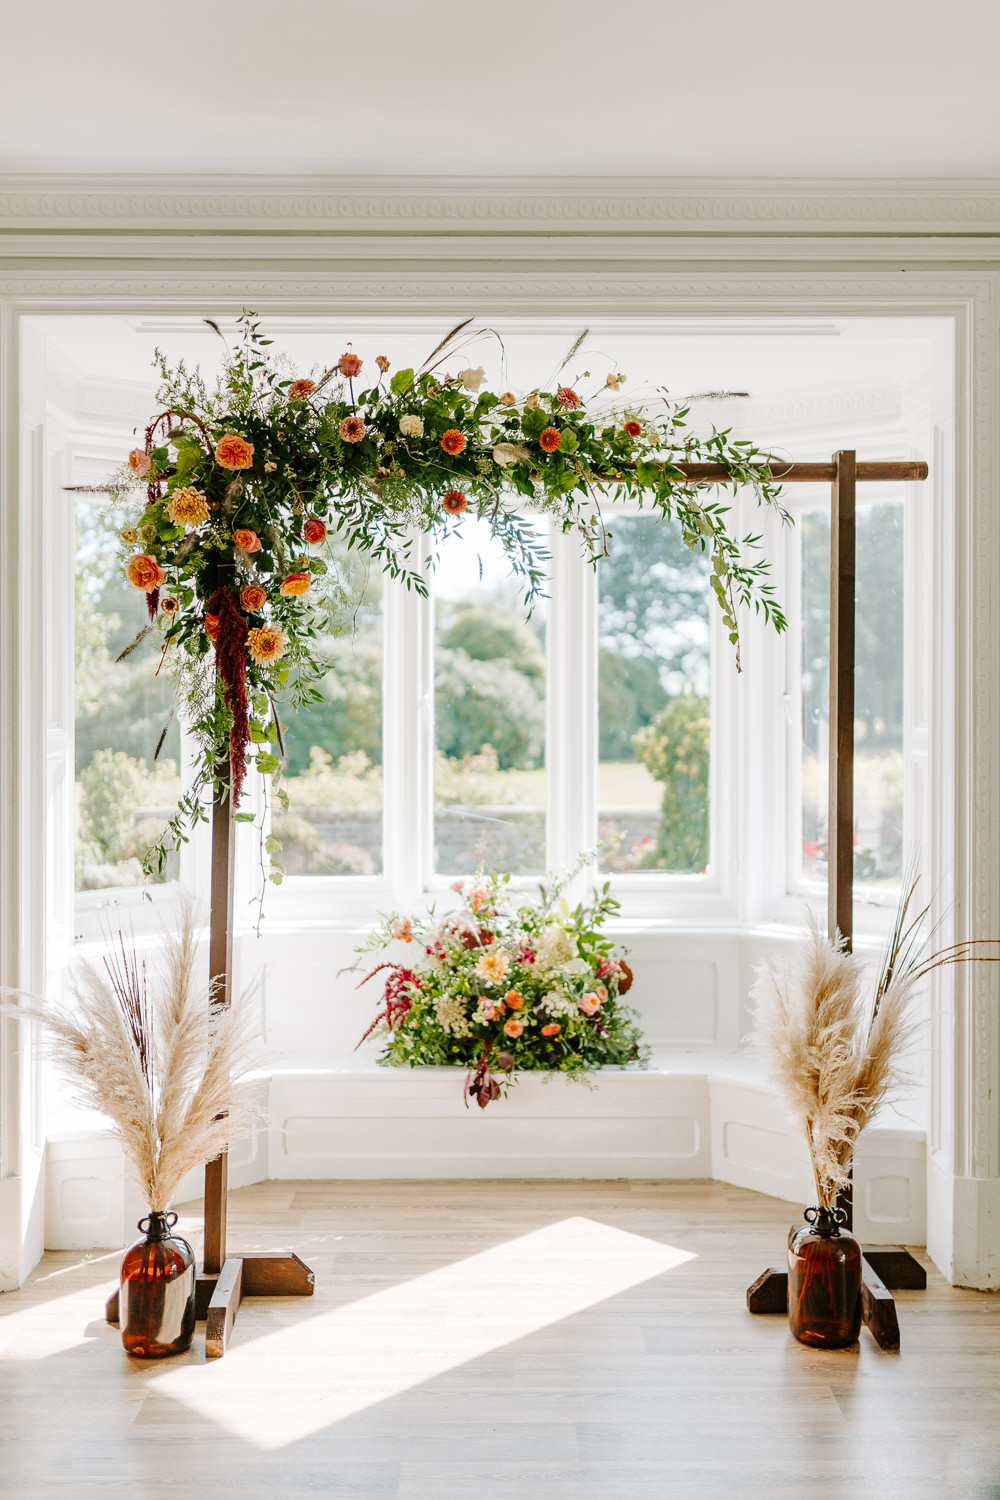 Flower Arch Ceremony Aisle Backdrop Pampas Grass Contemporary Wedding Ideas Chloe Ely Photography